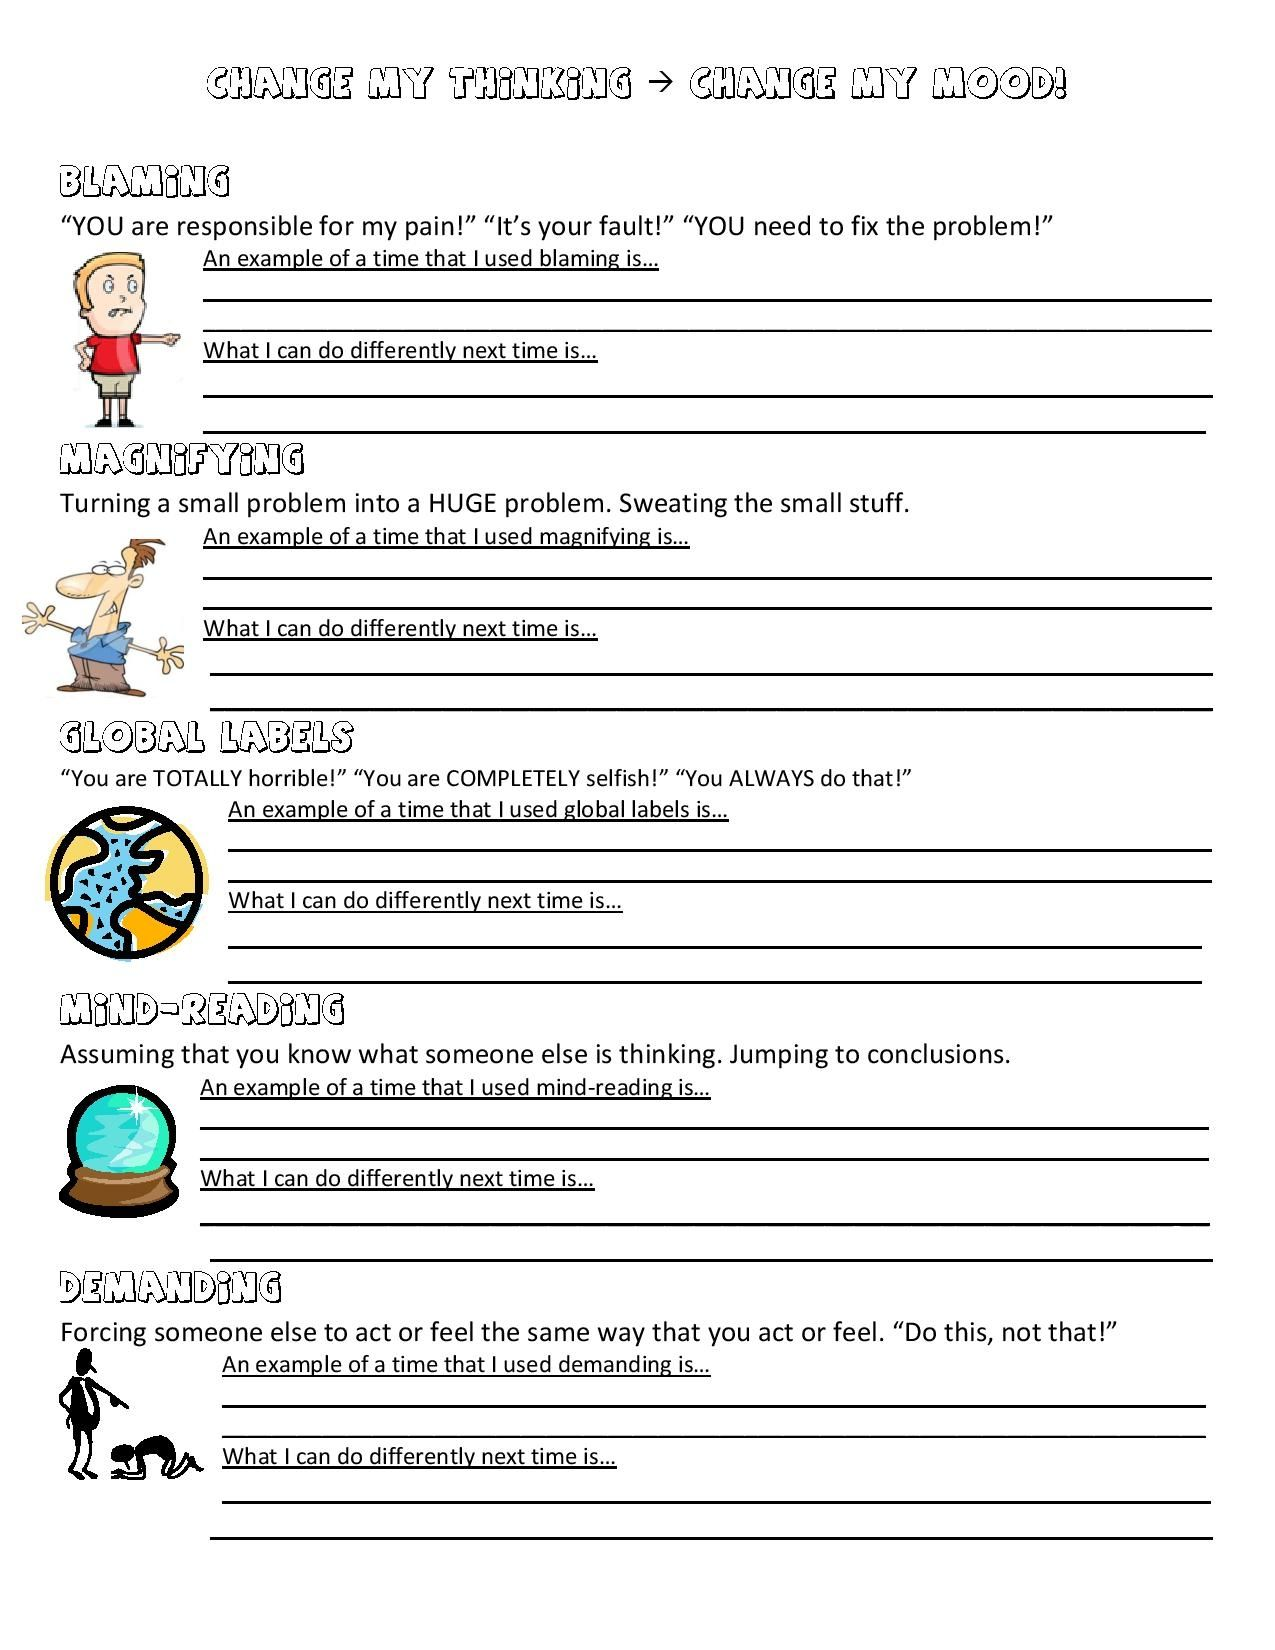 Worksheets For Therapy : Anger management worksheet mental health experiences